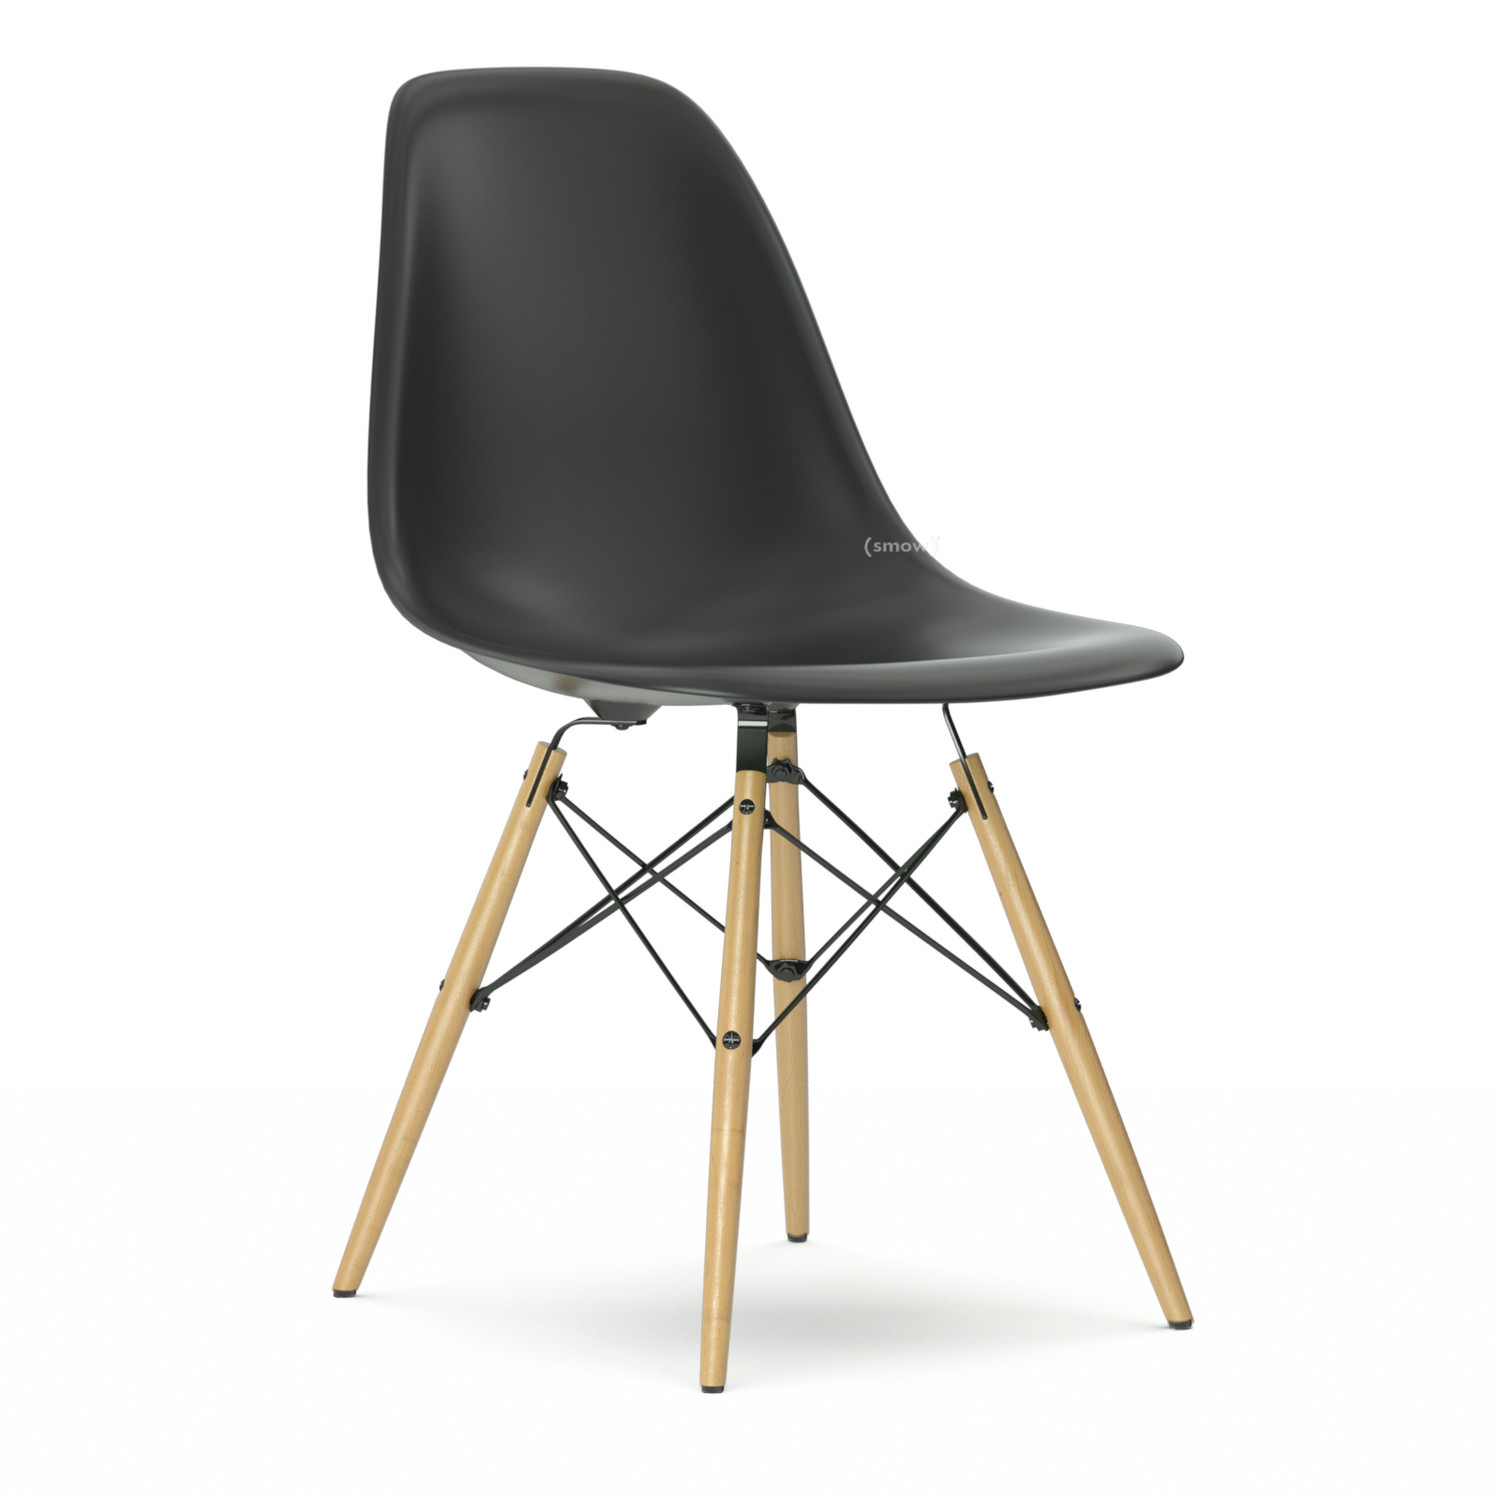 vitra eames plastic side chair dsw basic dark without. Black Bedroom Furniture Sets. Home Design Ideas